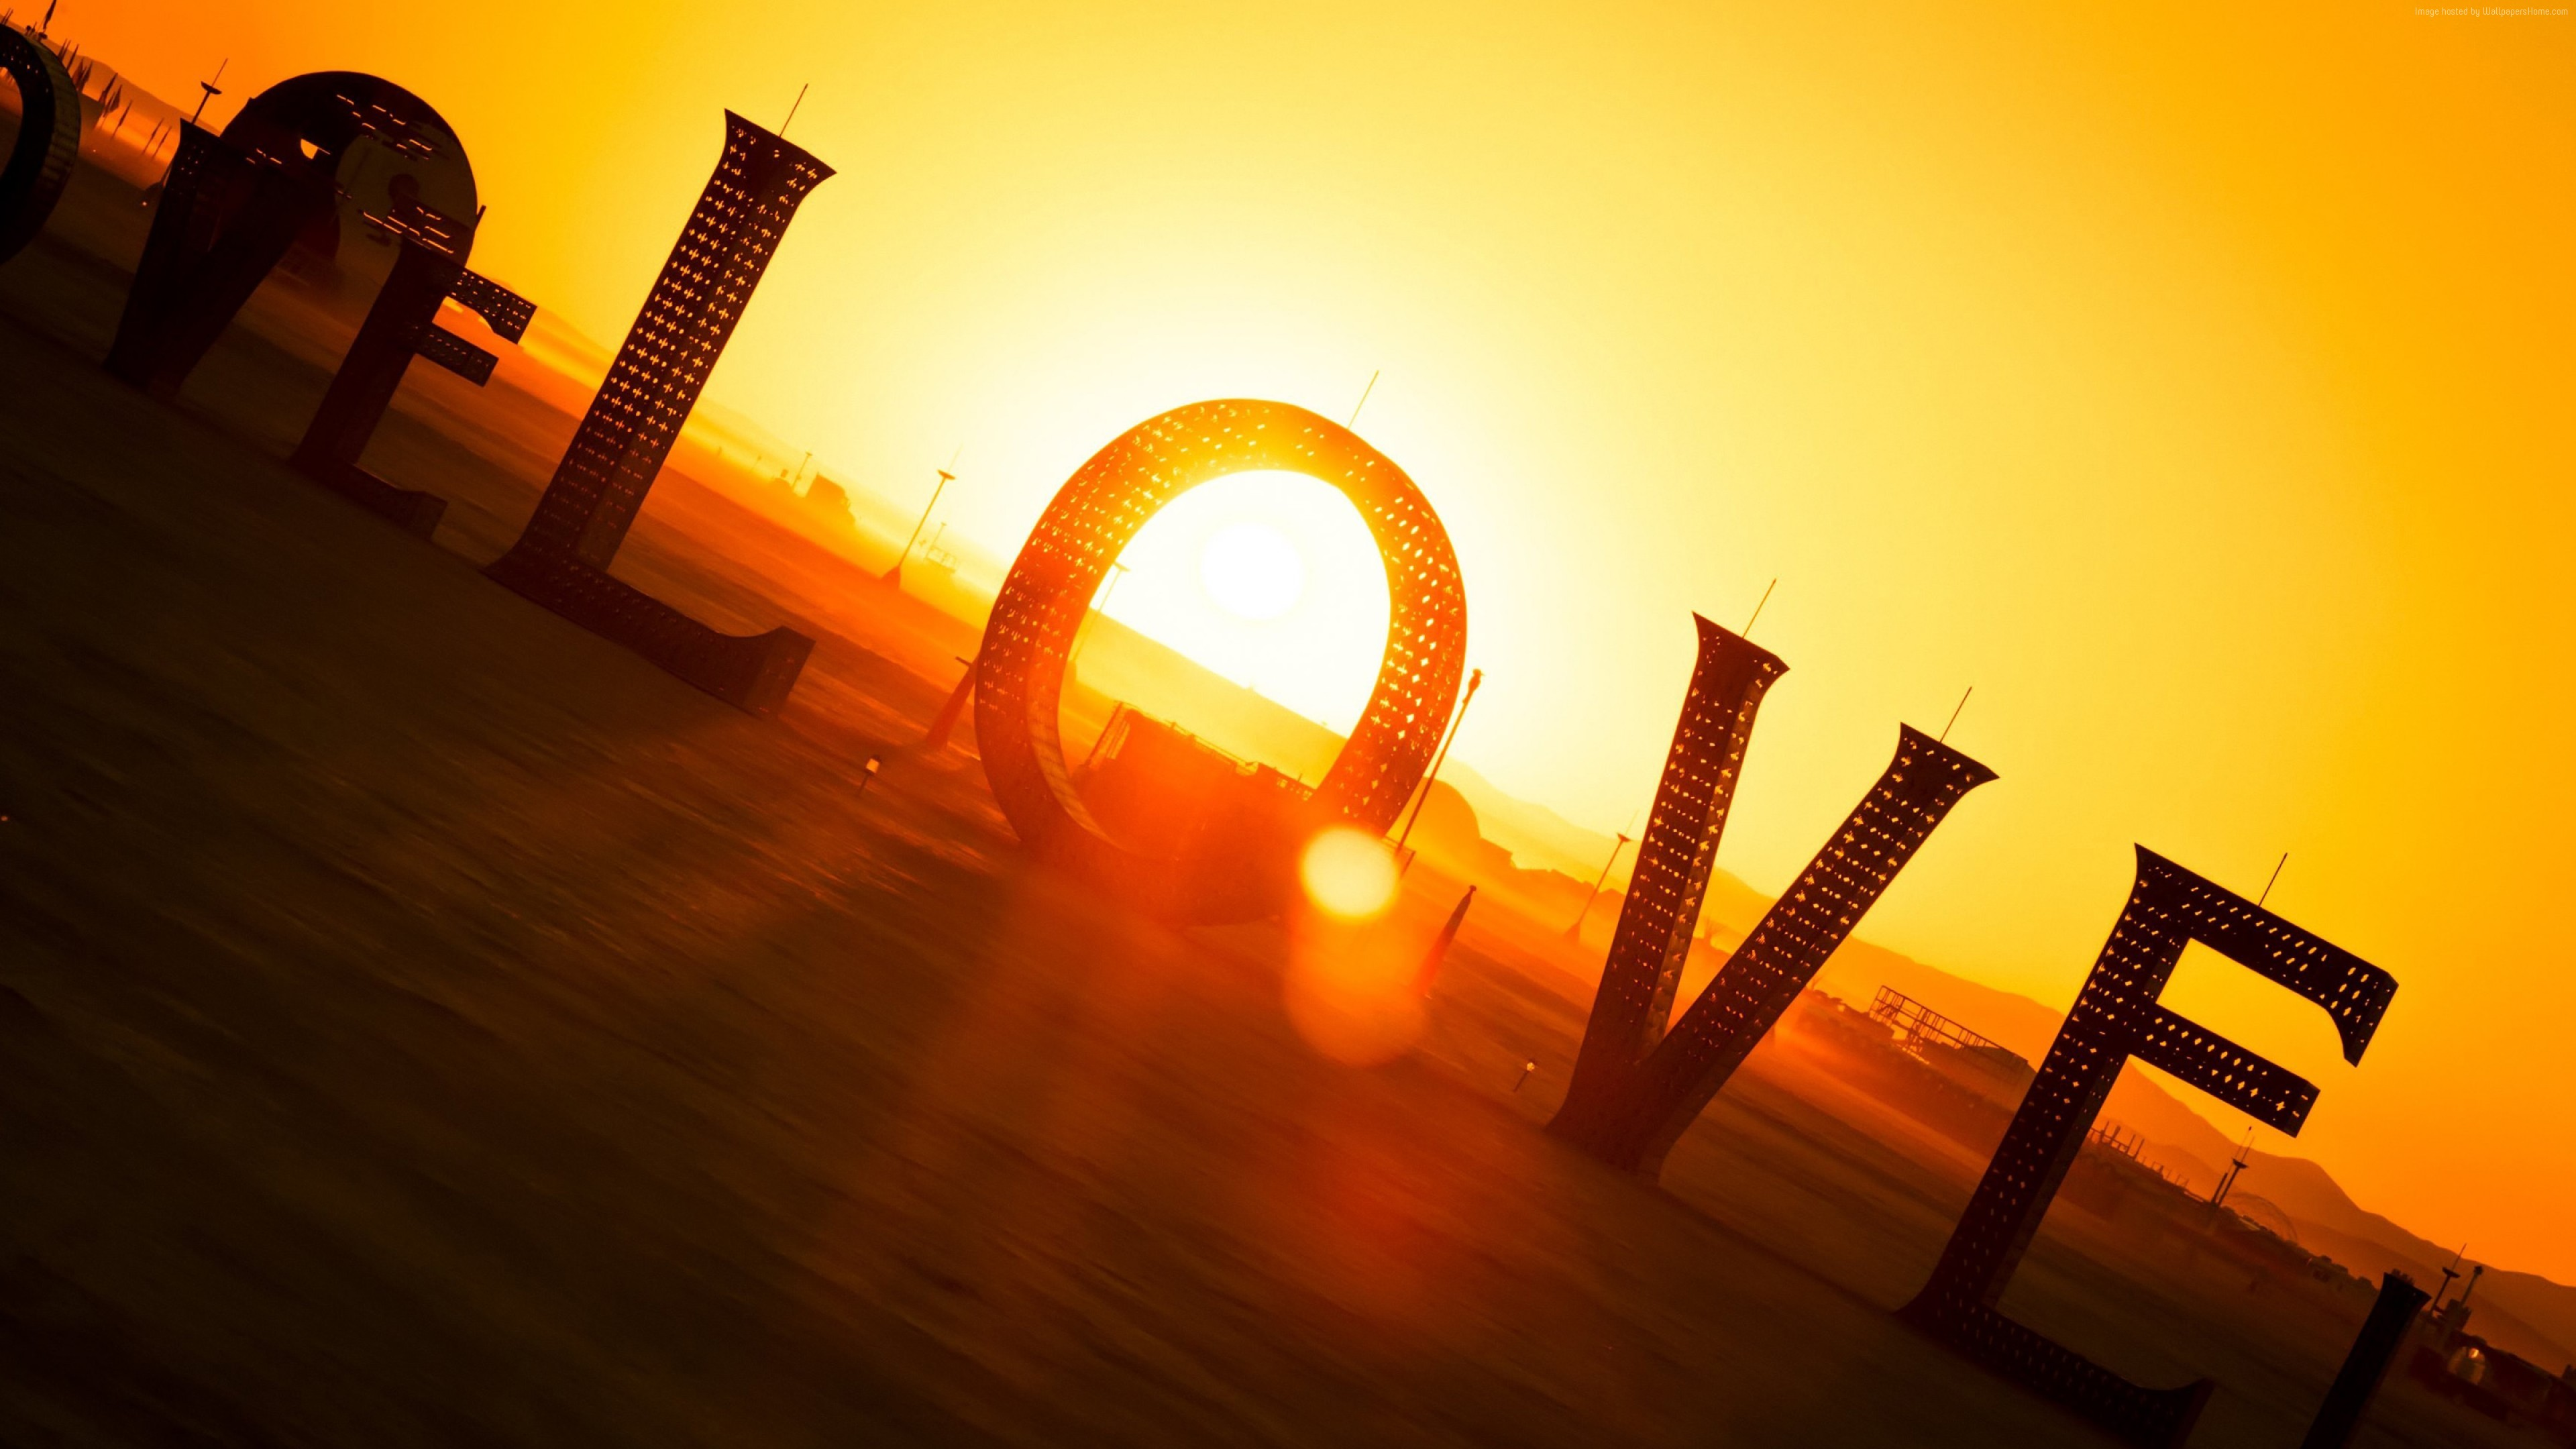 Stock Images love image, heart, HD, Stock Images